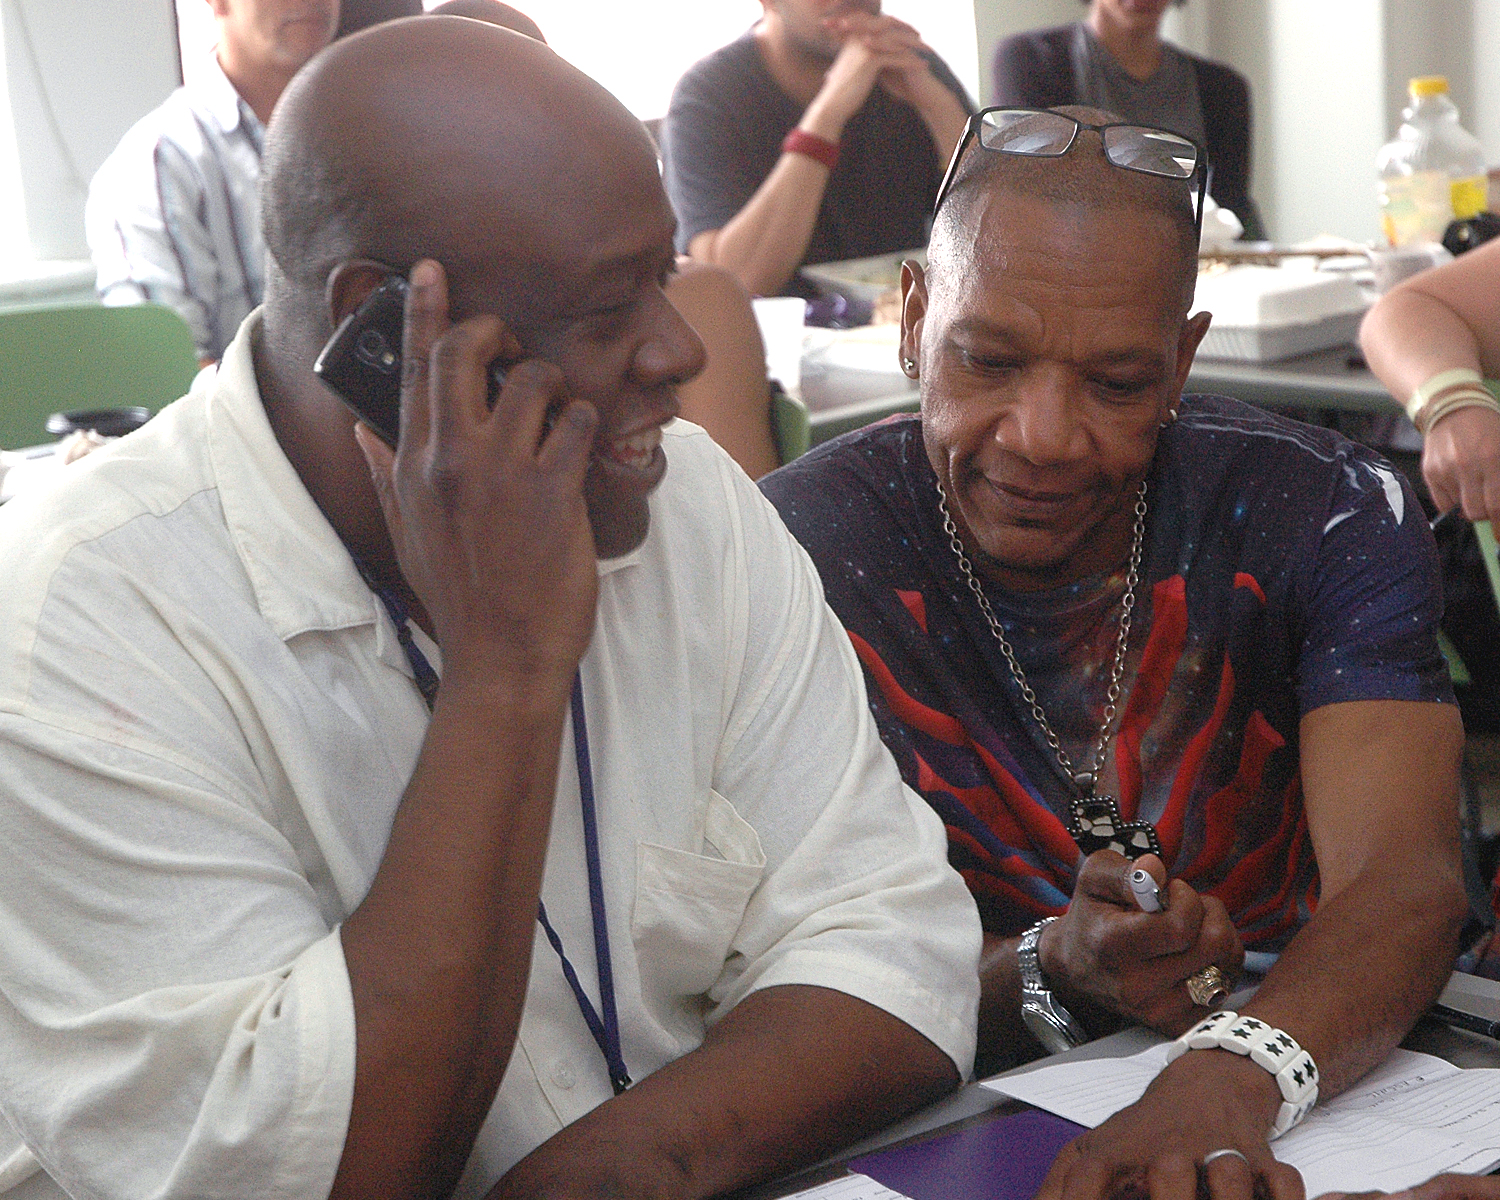 Philip W. and Marvin F. during their final role play